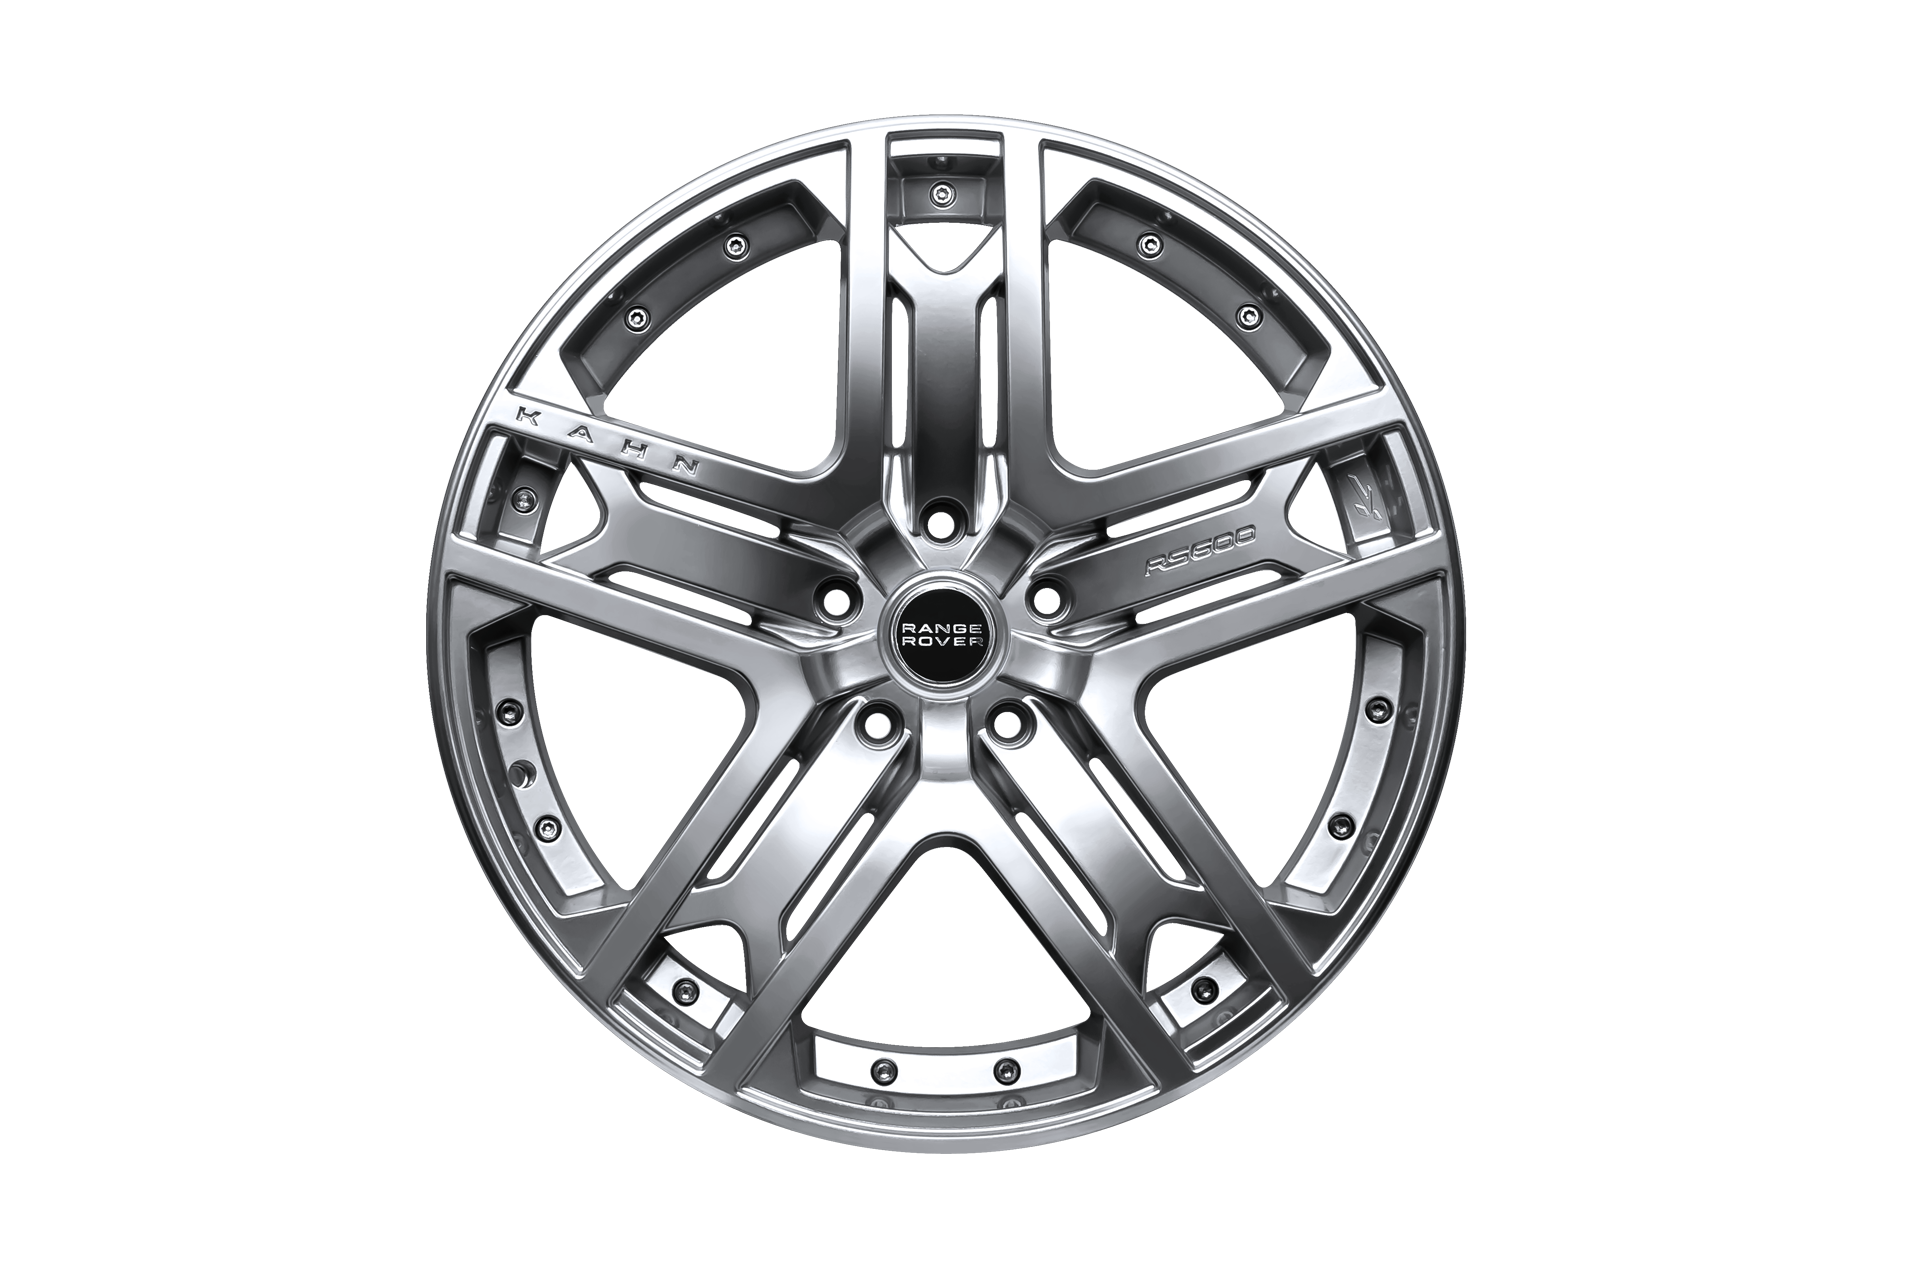 Range Rover (2002-2009) Rs600 Light Alloy Wheels by Kahn - Image 3665